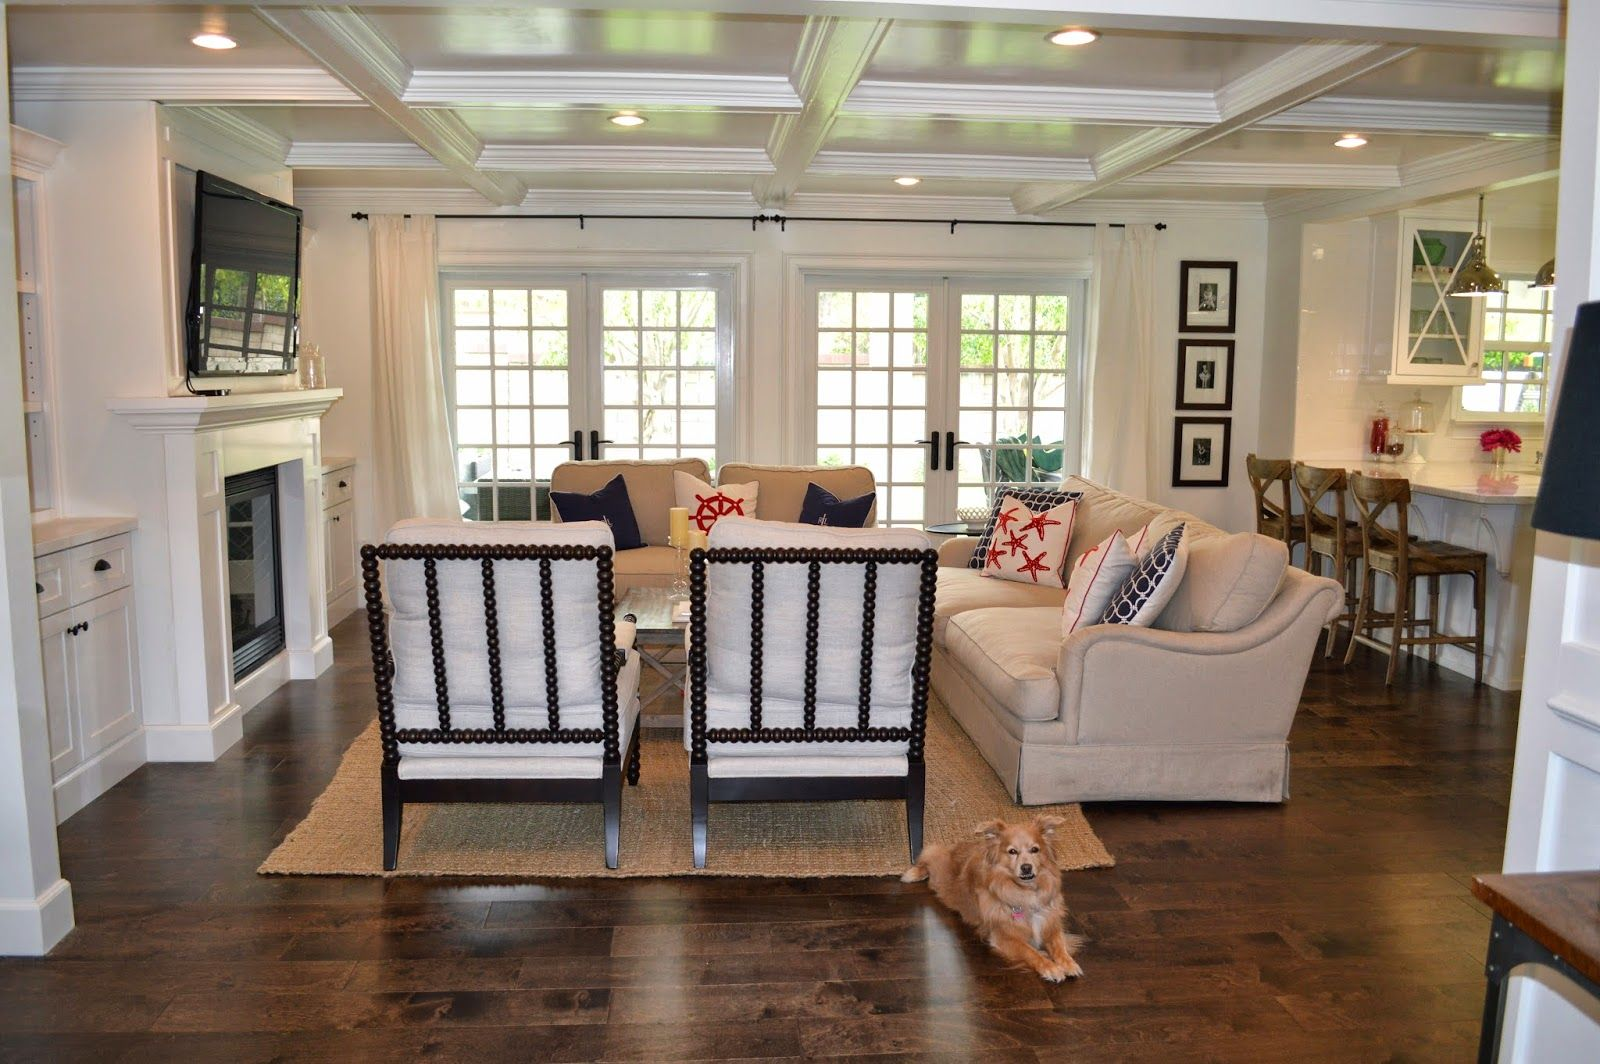 The cape cod ranch renovation great room entry living for Cape cod remodel ideas